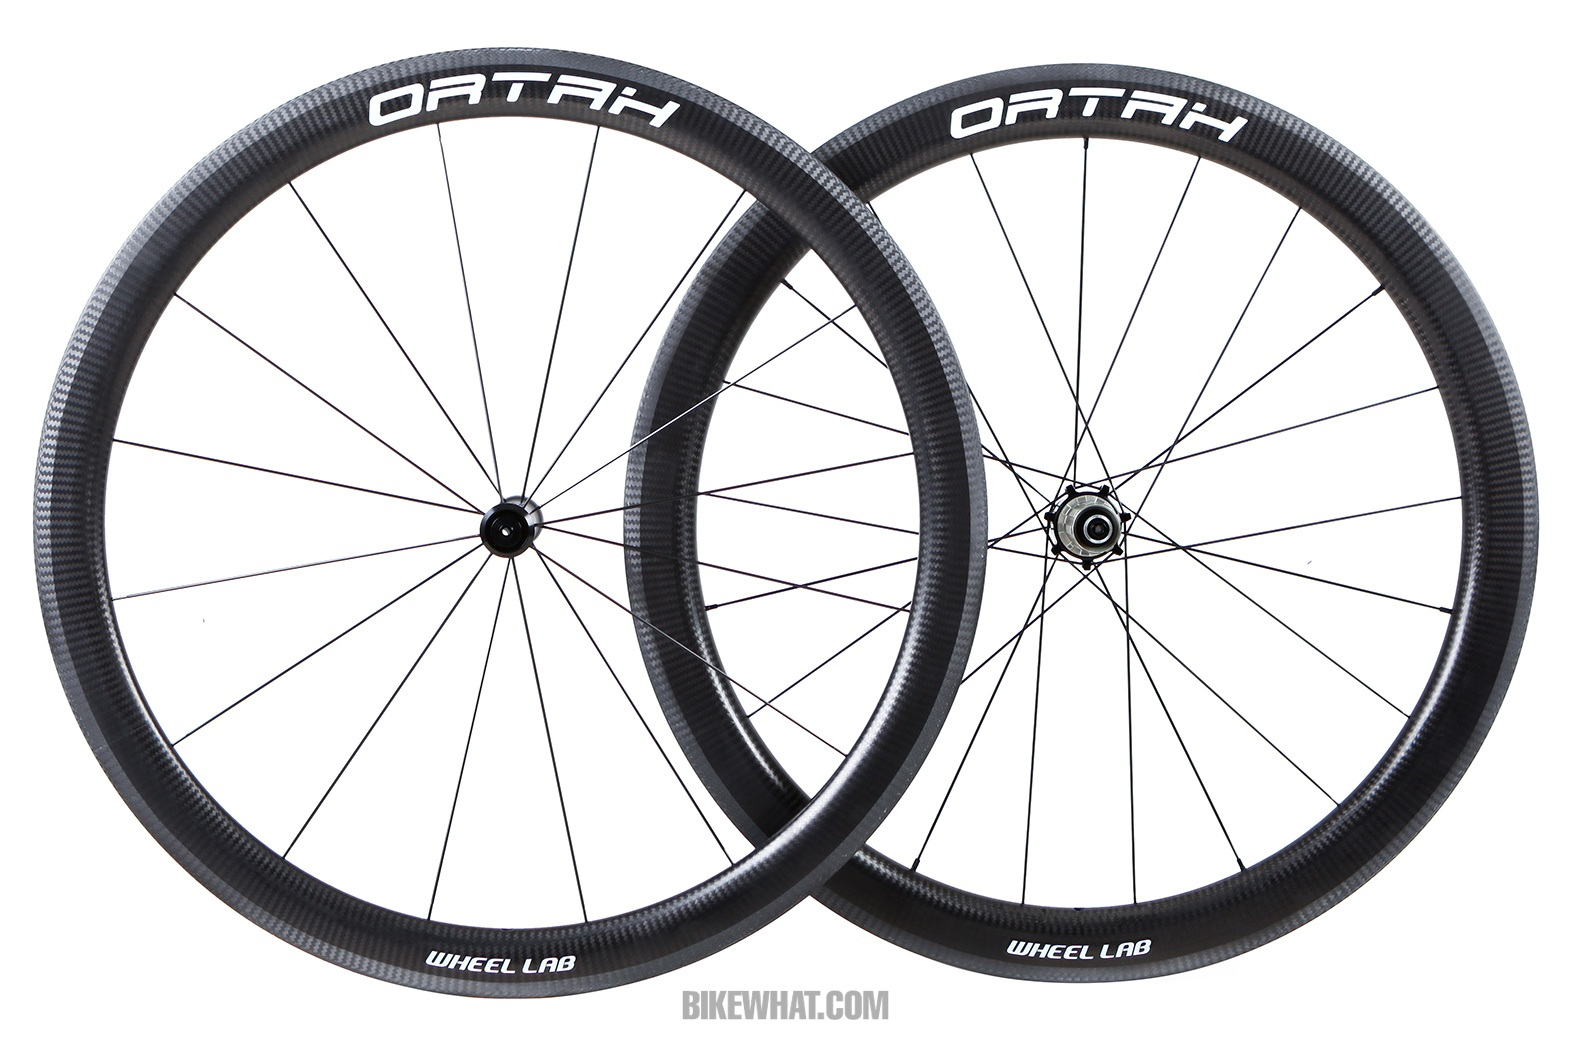 Wheel_lab_Oltah_07_T4.5.jpg